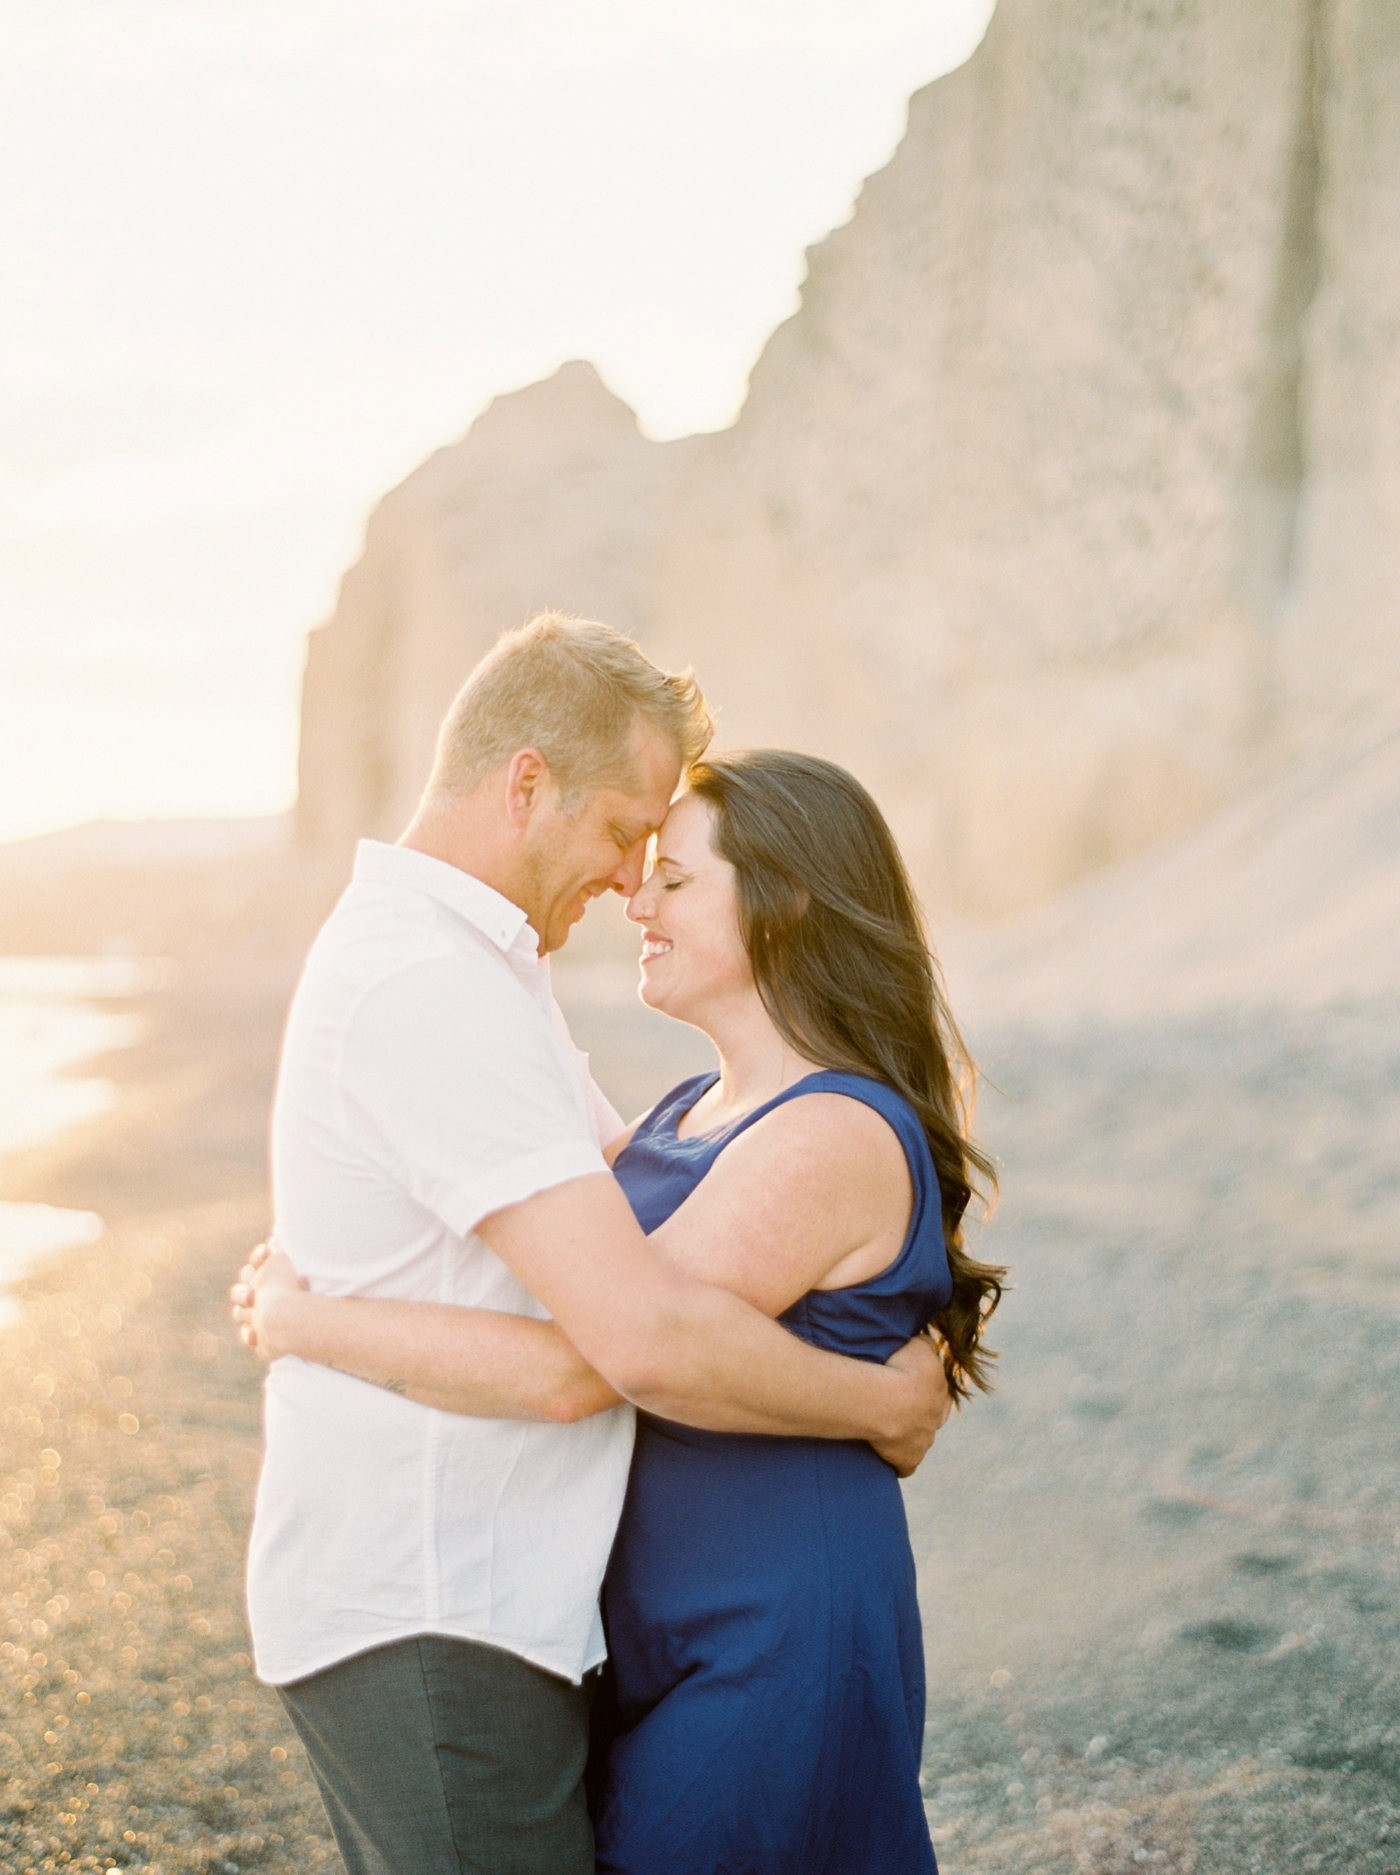 Santorini wedding photographer | beach couples session | engagement pre wedding session in santorini | justine milton fine art film photography